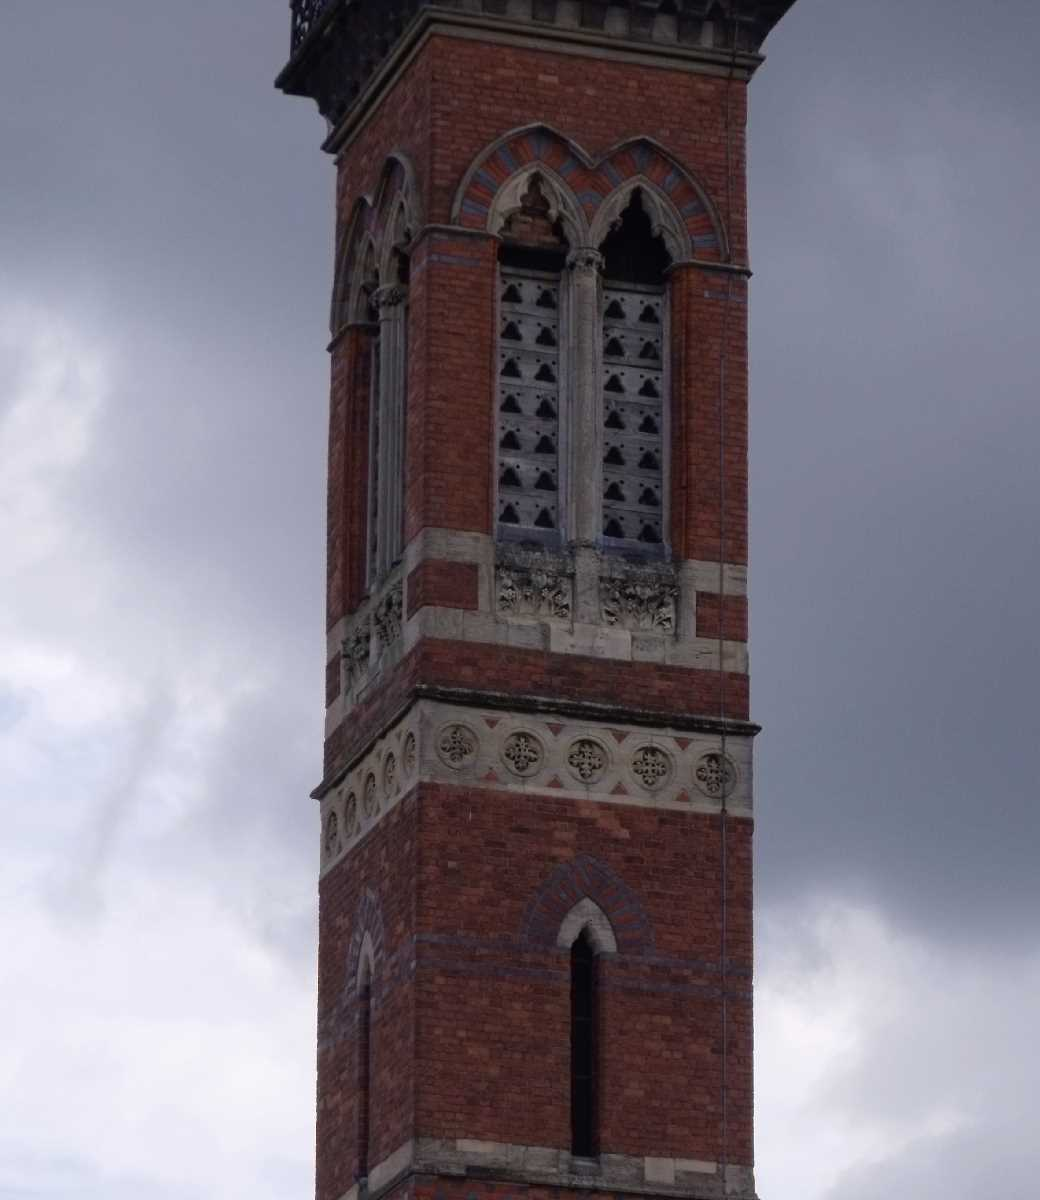 Edgbaston Waterworks Tower